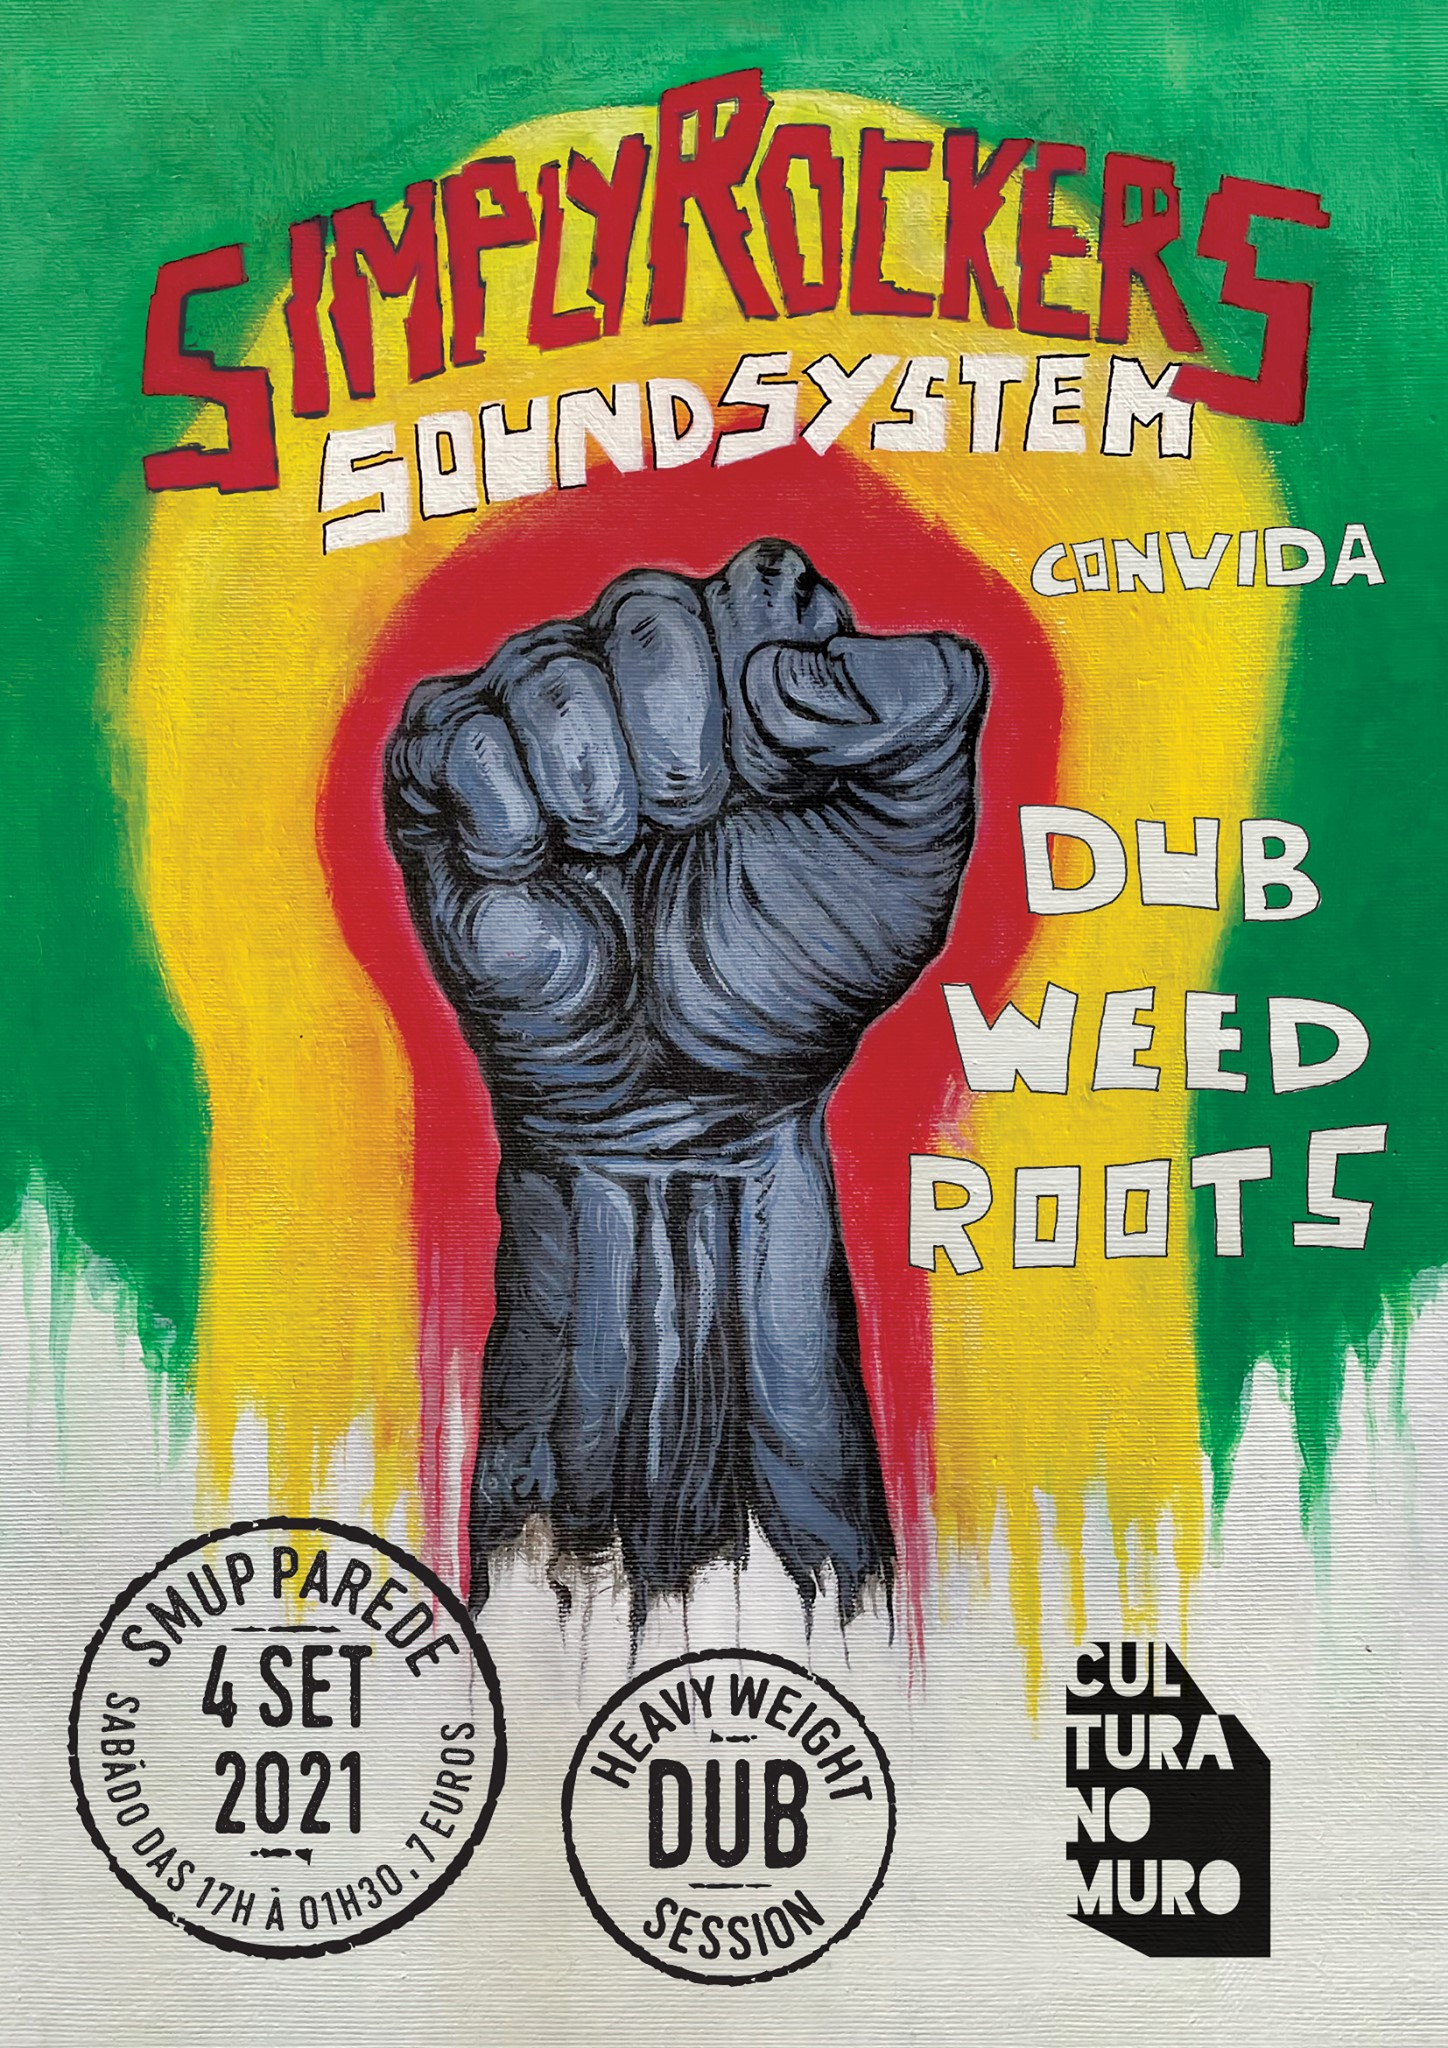 A Cultura no Muro apresenta: Simply Rockers Sound System + Dub Weed Roots na SMUP